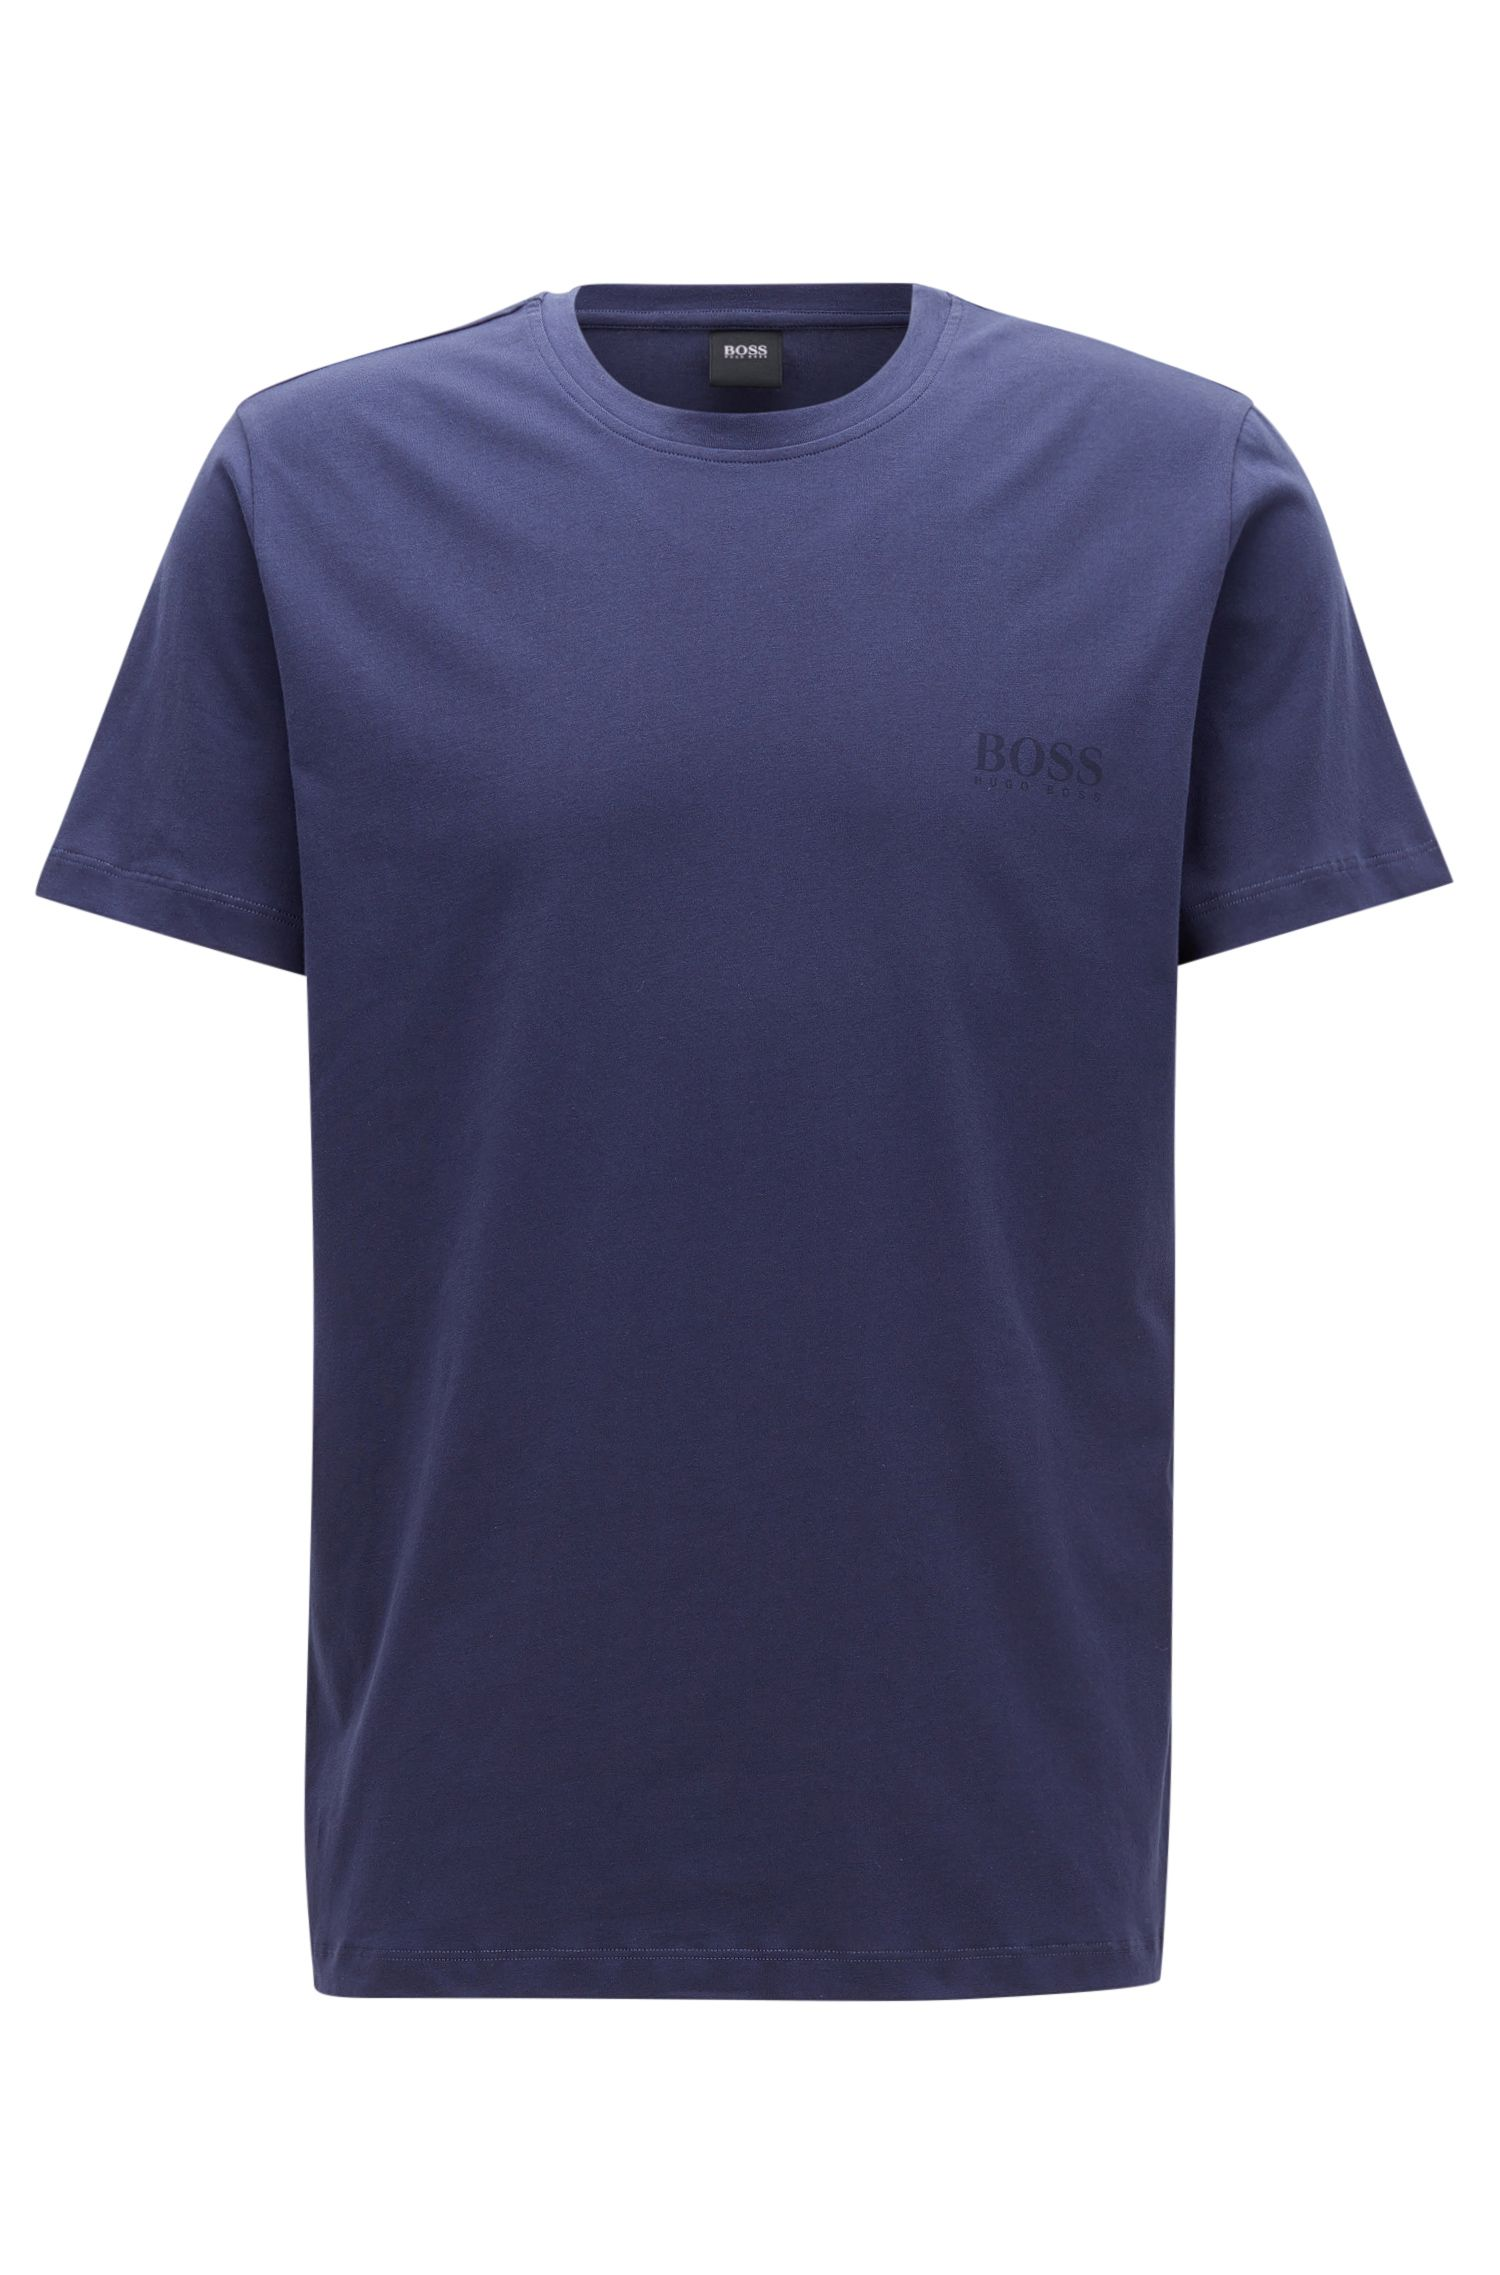 Relaxed-fit T-shirt in soft cotton